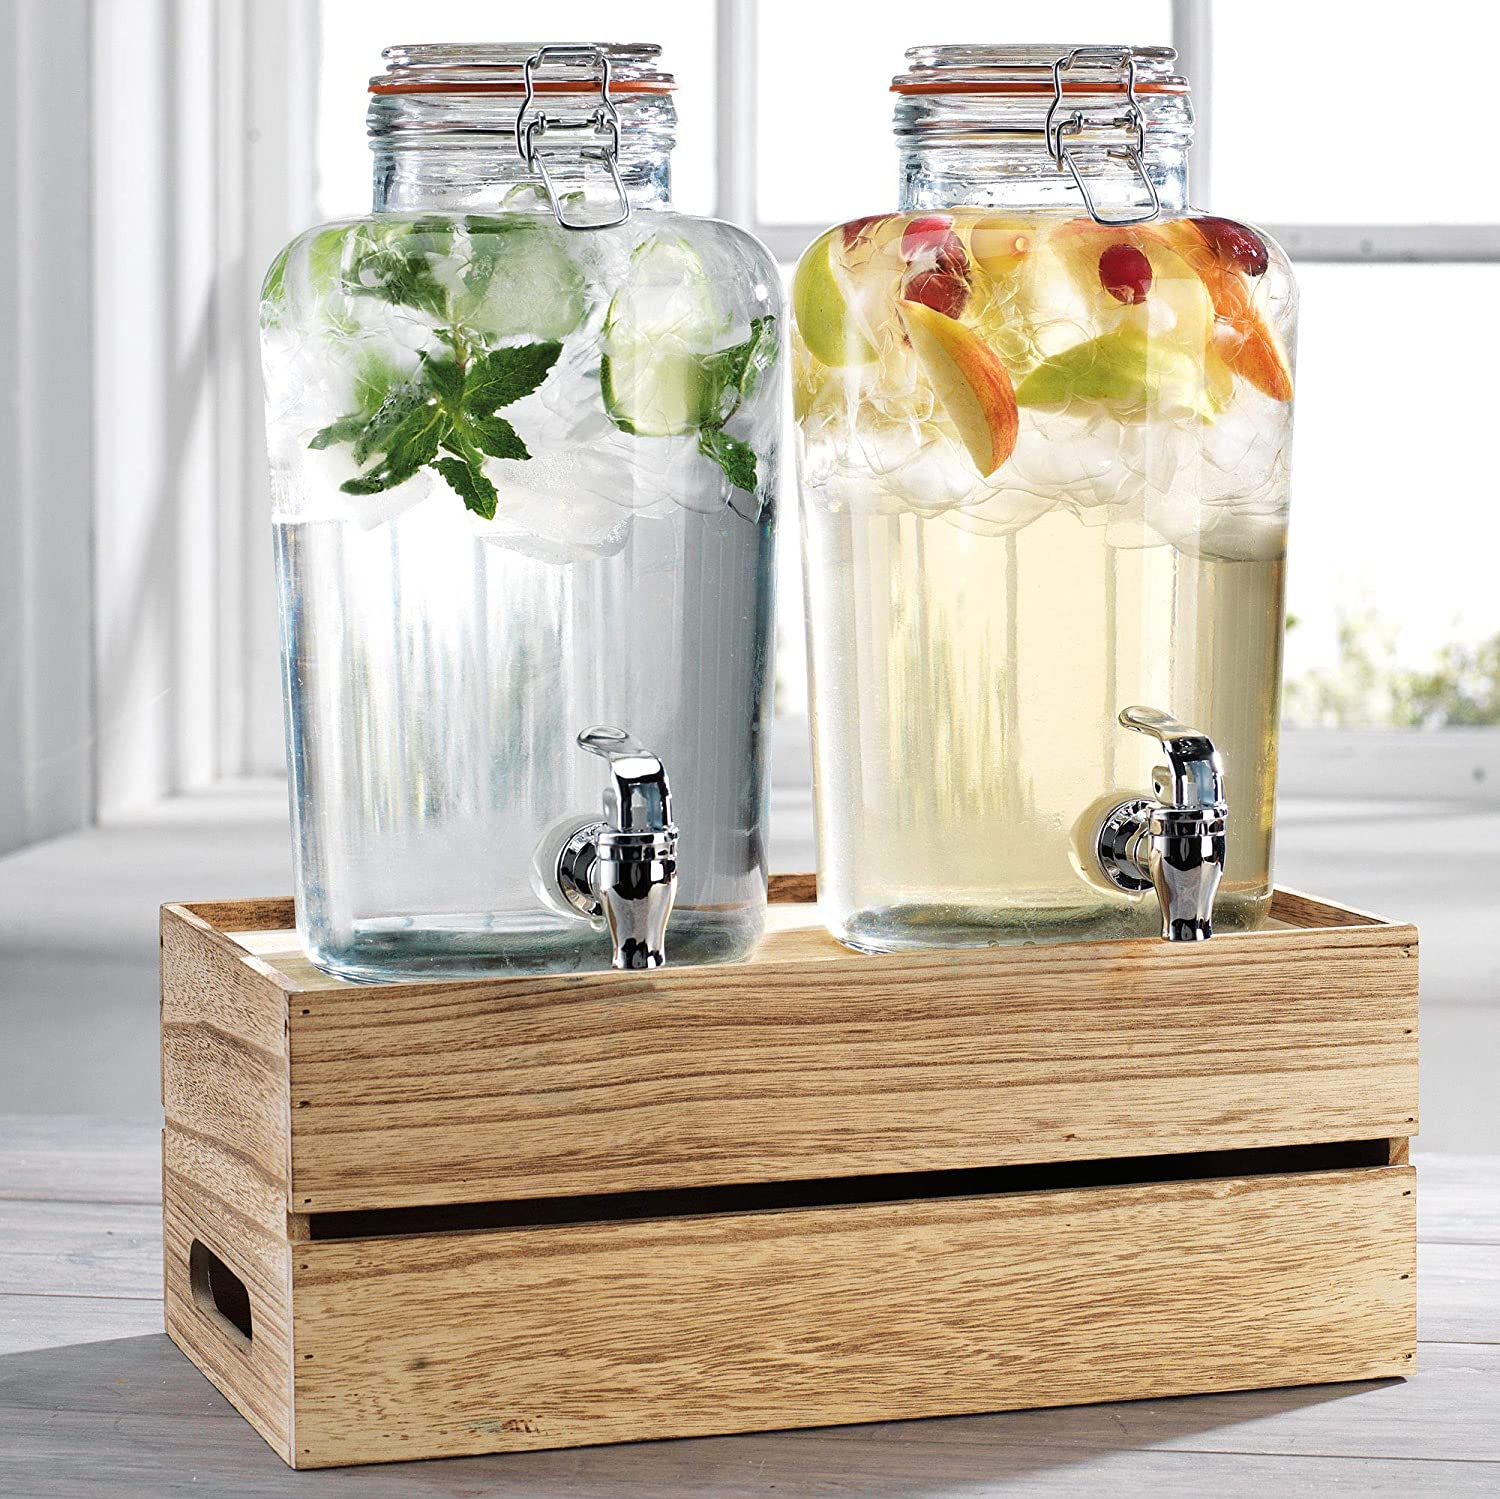 Outdoor Glass Beverage Dispenser + Wooden Base, Stainless Steel Spigot - 100% Leak Proof - Wide Mouth Easy Filling - Fun Party Glassware for Water, Iced Tea, Punch, Cold Drinks, 2-1 Gallon Mason Jars